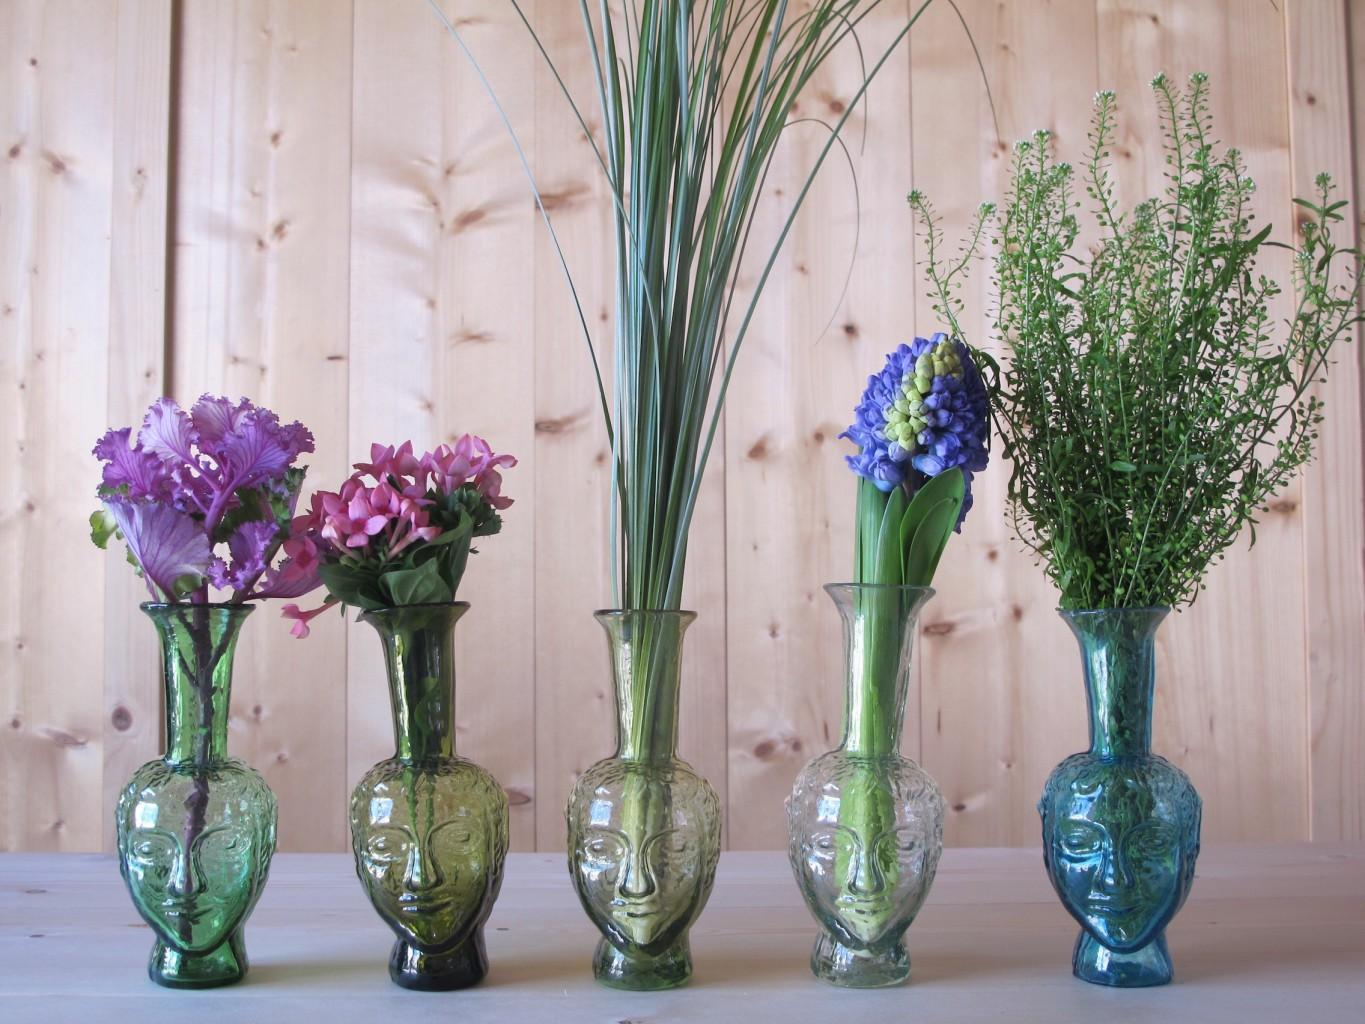 L to R: Vase Tete Green, Olive, Yellow, Transparent, Turquoise